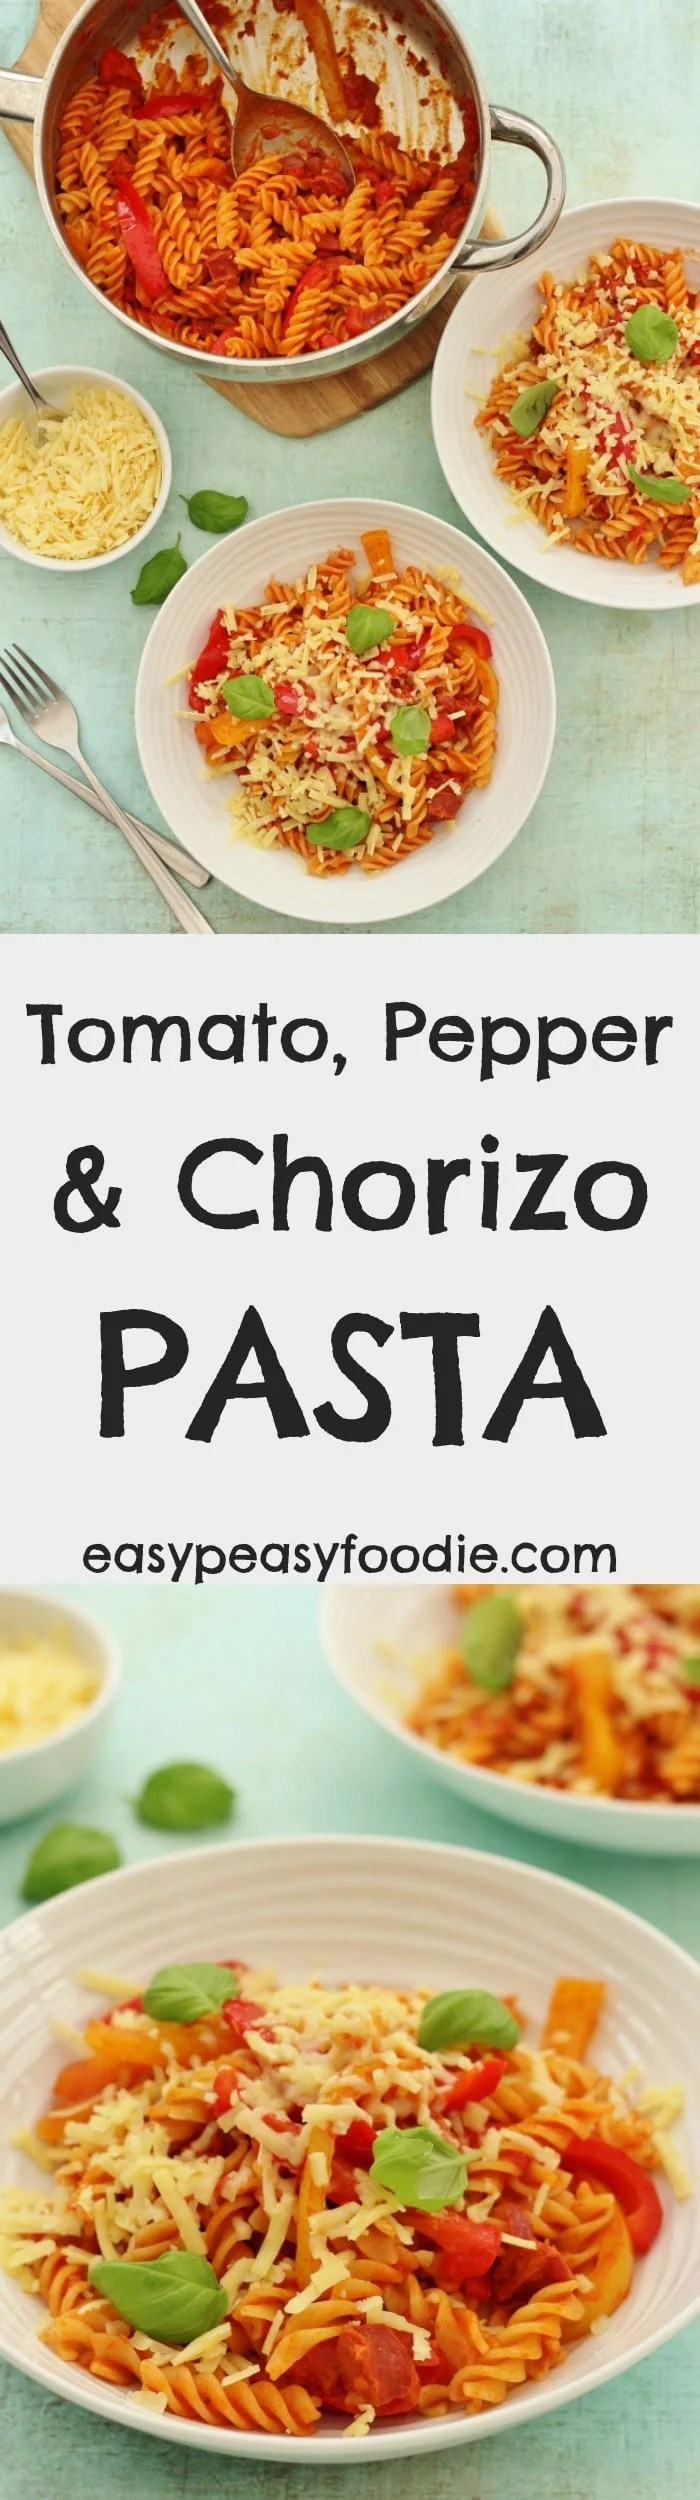 A quick and easy family friendly meal, this Tomato, Pepper and Chorizo Pasta takes just 30 minutes to make and is packed full of flavour…perfect for busy weeknight evenings. #chorizo #pasta #peppers #tomatoes #under30minutes #cheese #cheddarcheese #easydinners #midweekmeals #familydinners #easypeasyfoodie